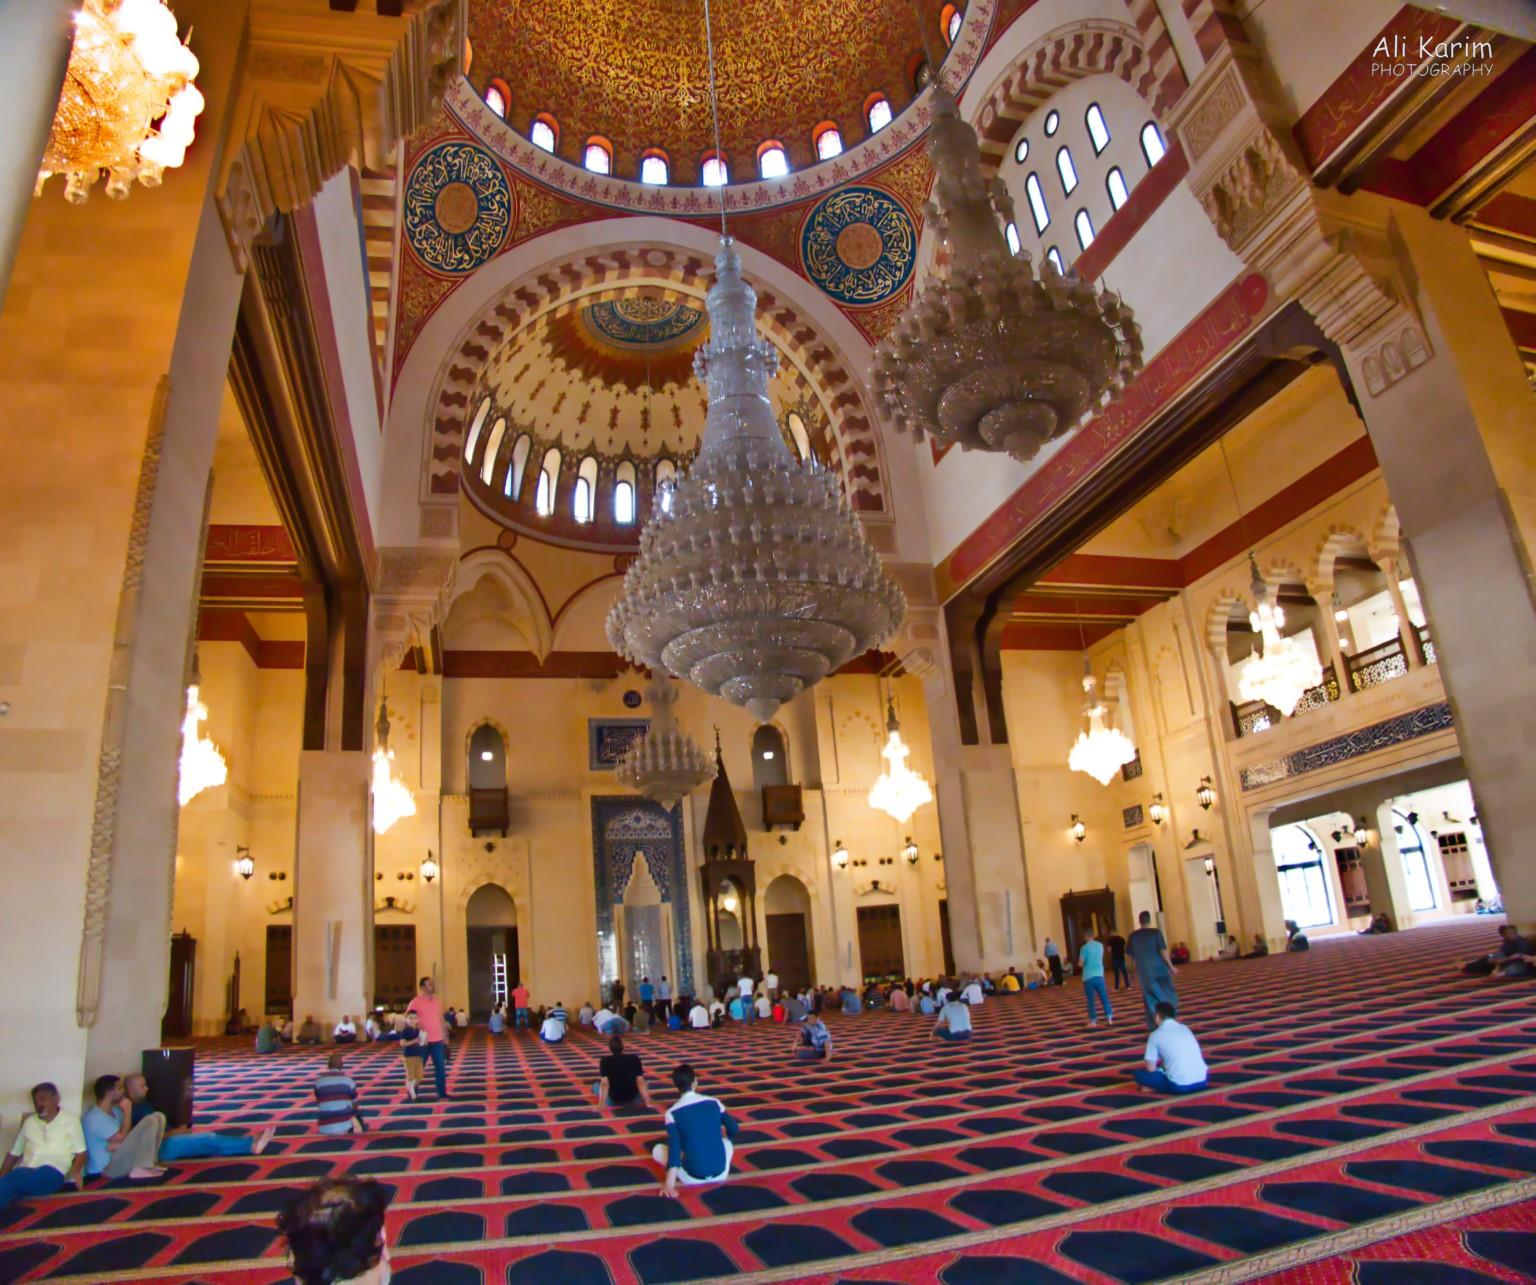 Beirut Inside the Mohammed Al-Amin mosque, before afternoon prayers